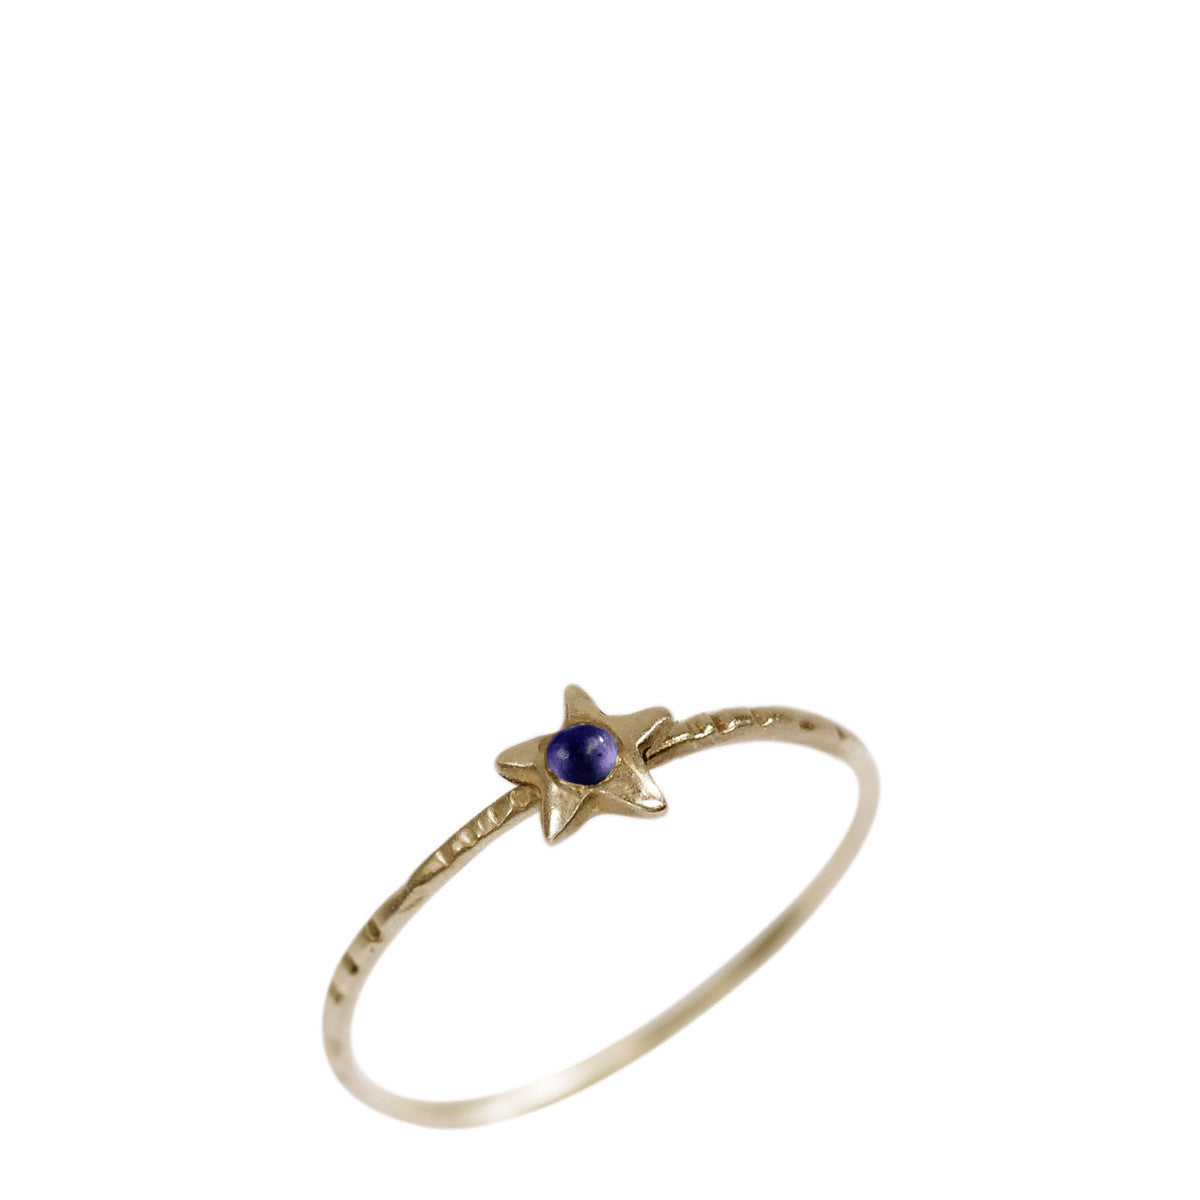 10K Gold Tiny Star Ring with Iolite